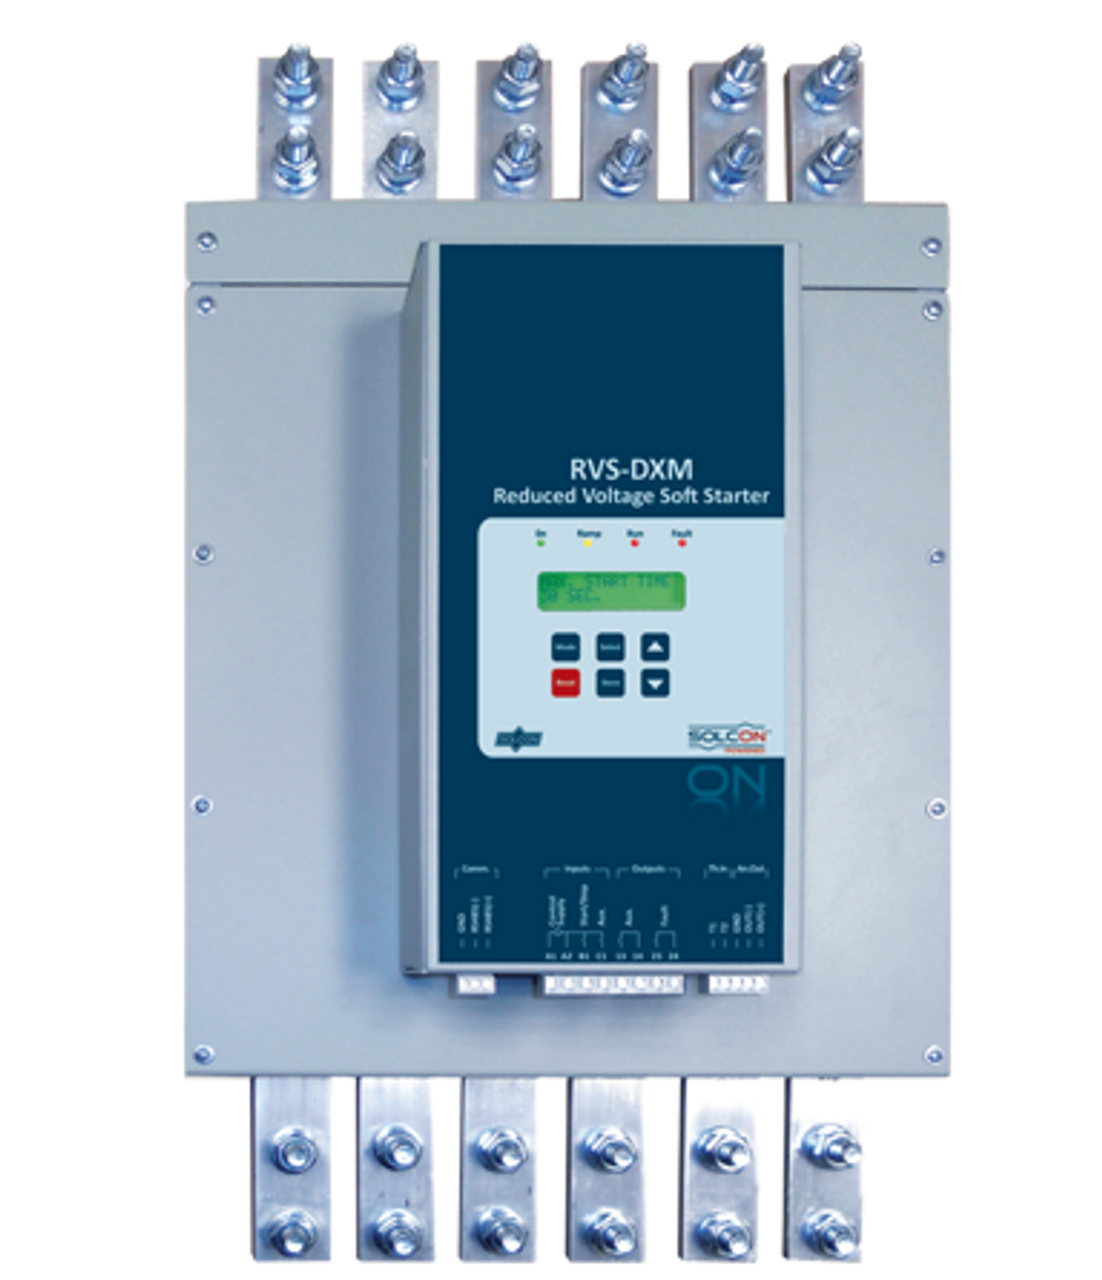 RVS-DX: Standard Duty Soft Starter with Built-in Bypass